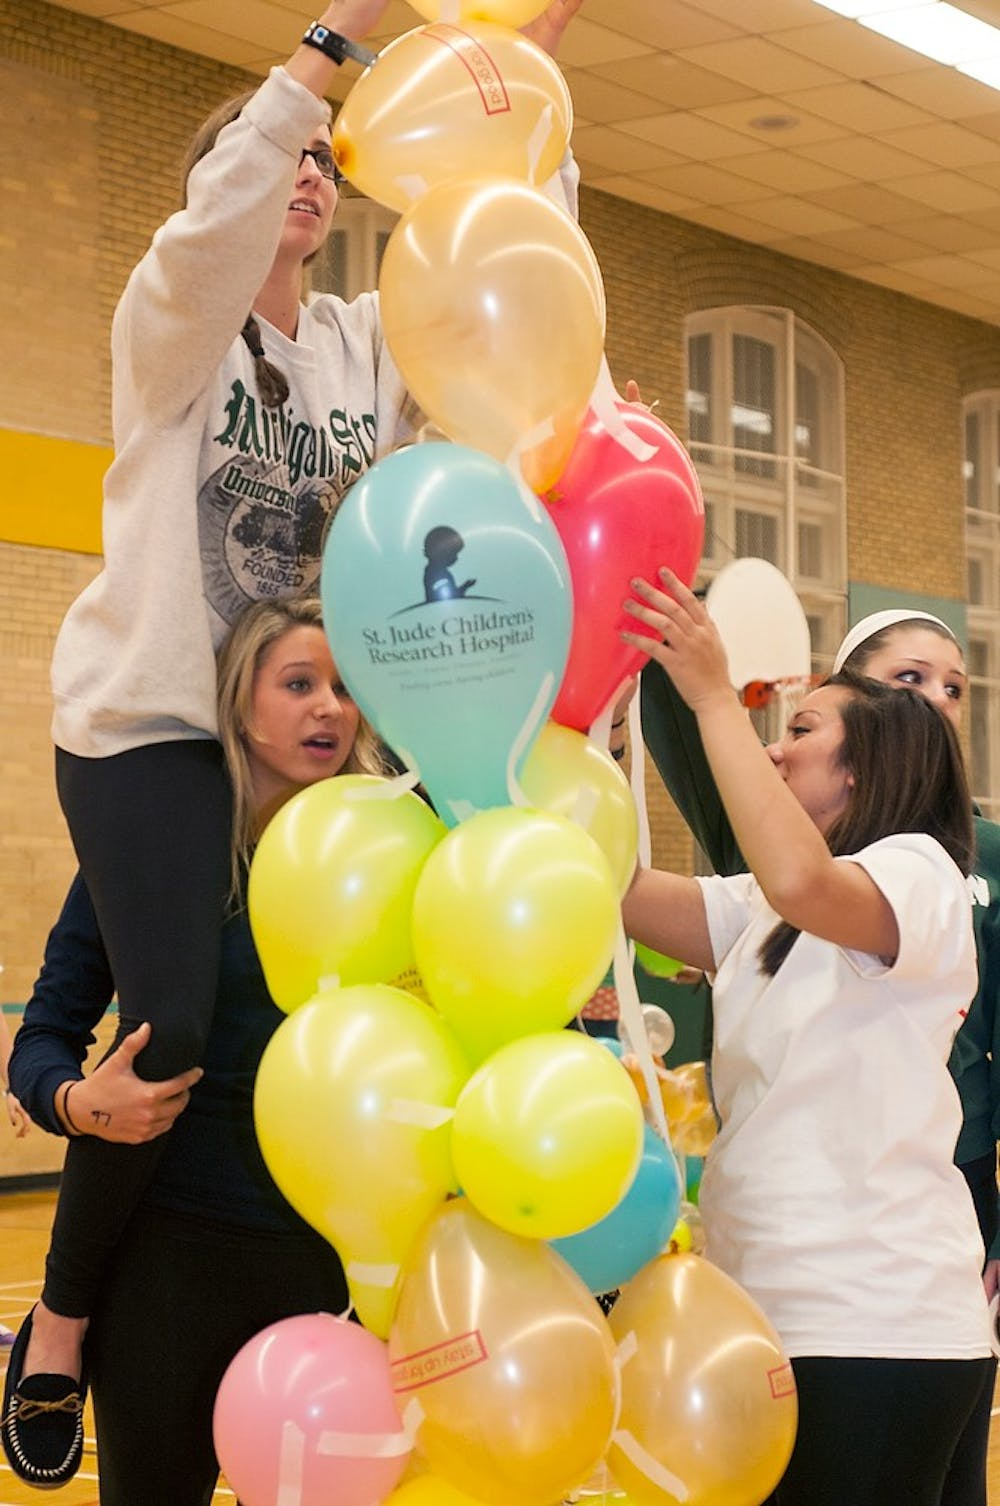 <p>Pre-medical freshman Jaqui Somes sits on the shoulders of supply chain management freshman Jamie Ulanch while while building a balloon tower with teammates Nov. 15, 2013, at IM Sports-Circle. Students stayed up all night playing games, watching videos and eating to celebrate their fundraising for St. Judes research hospital.</p>